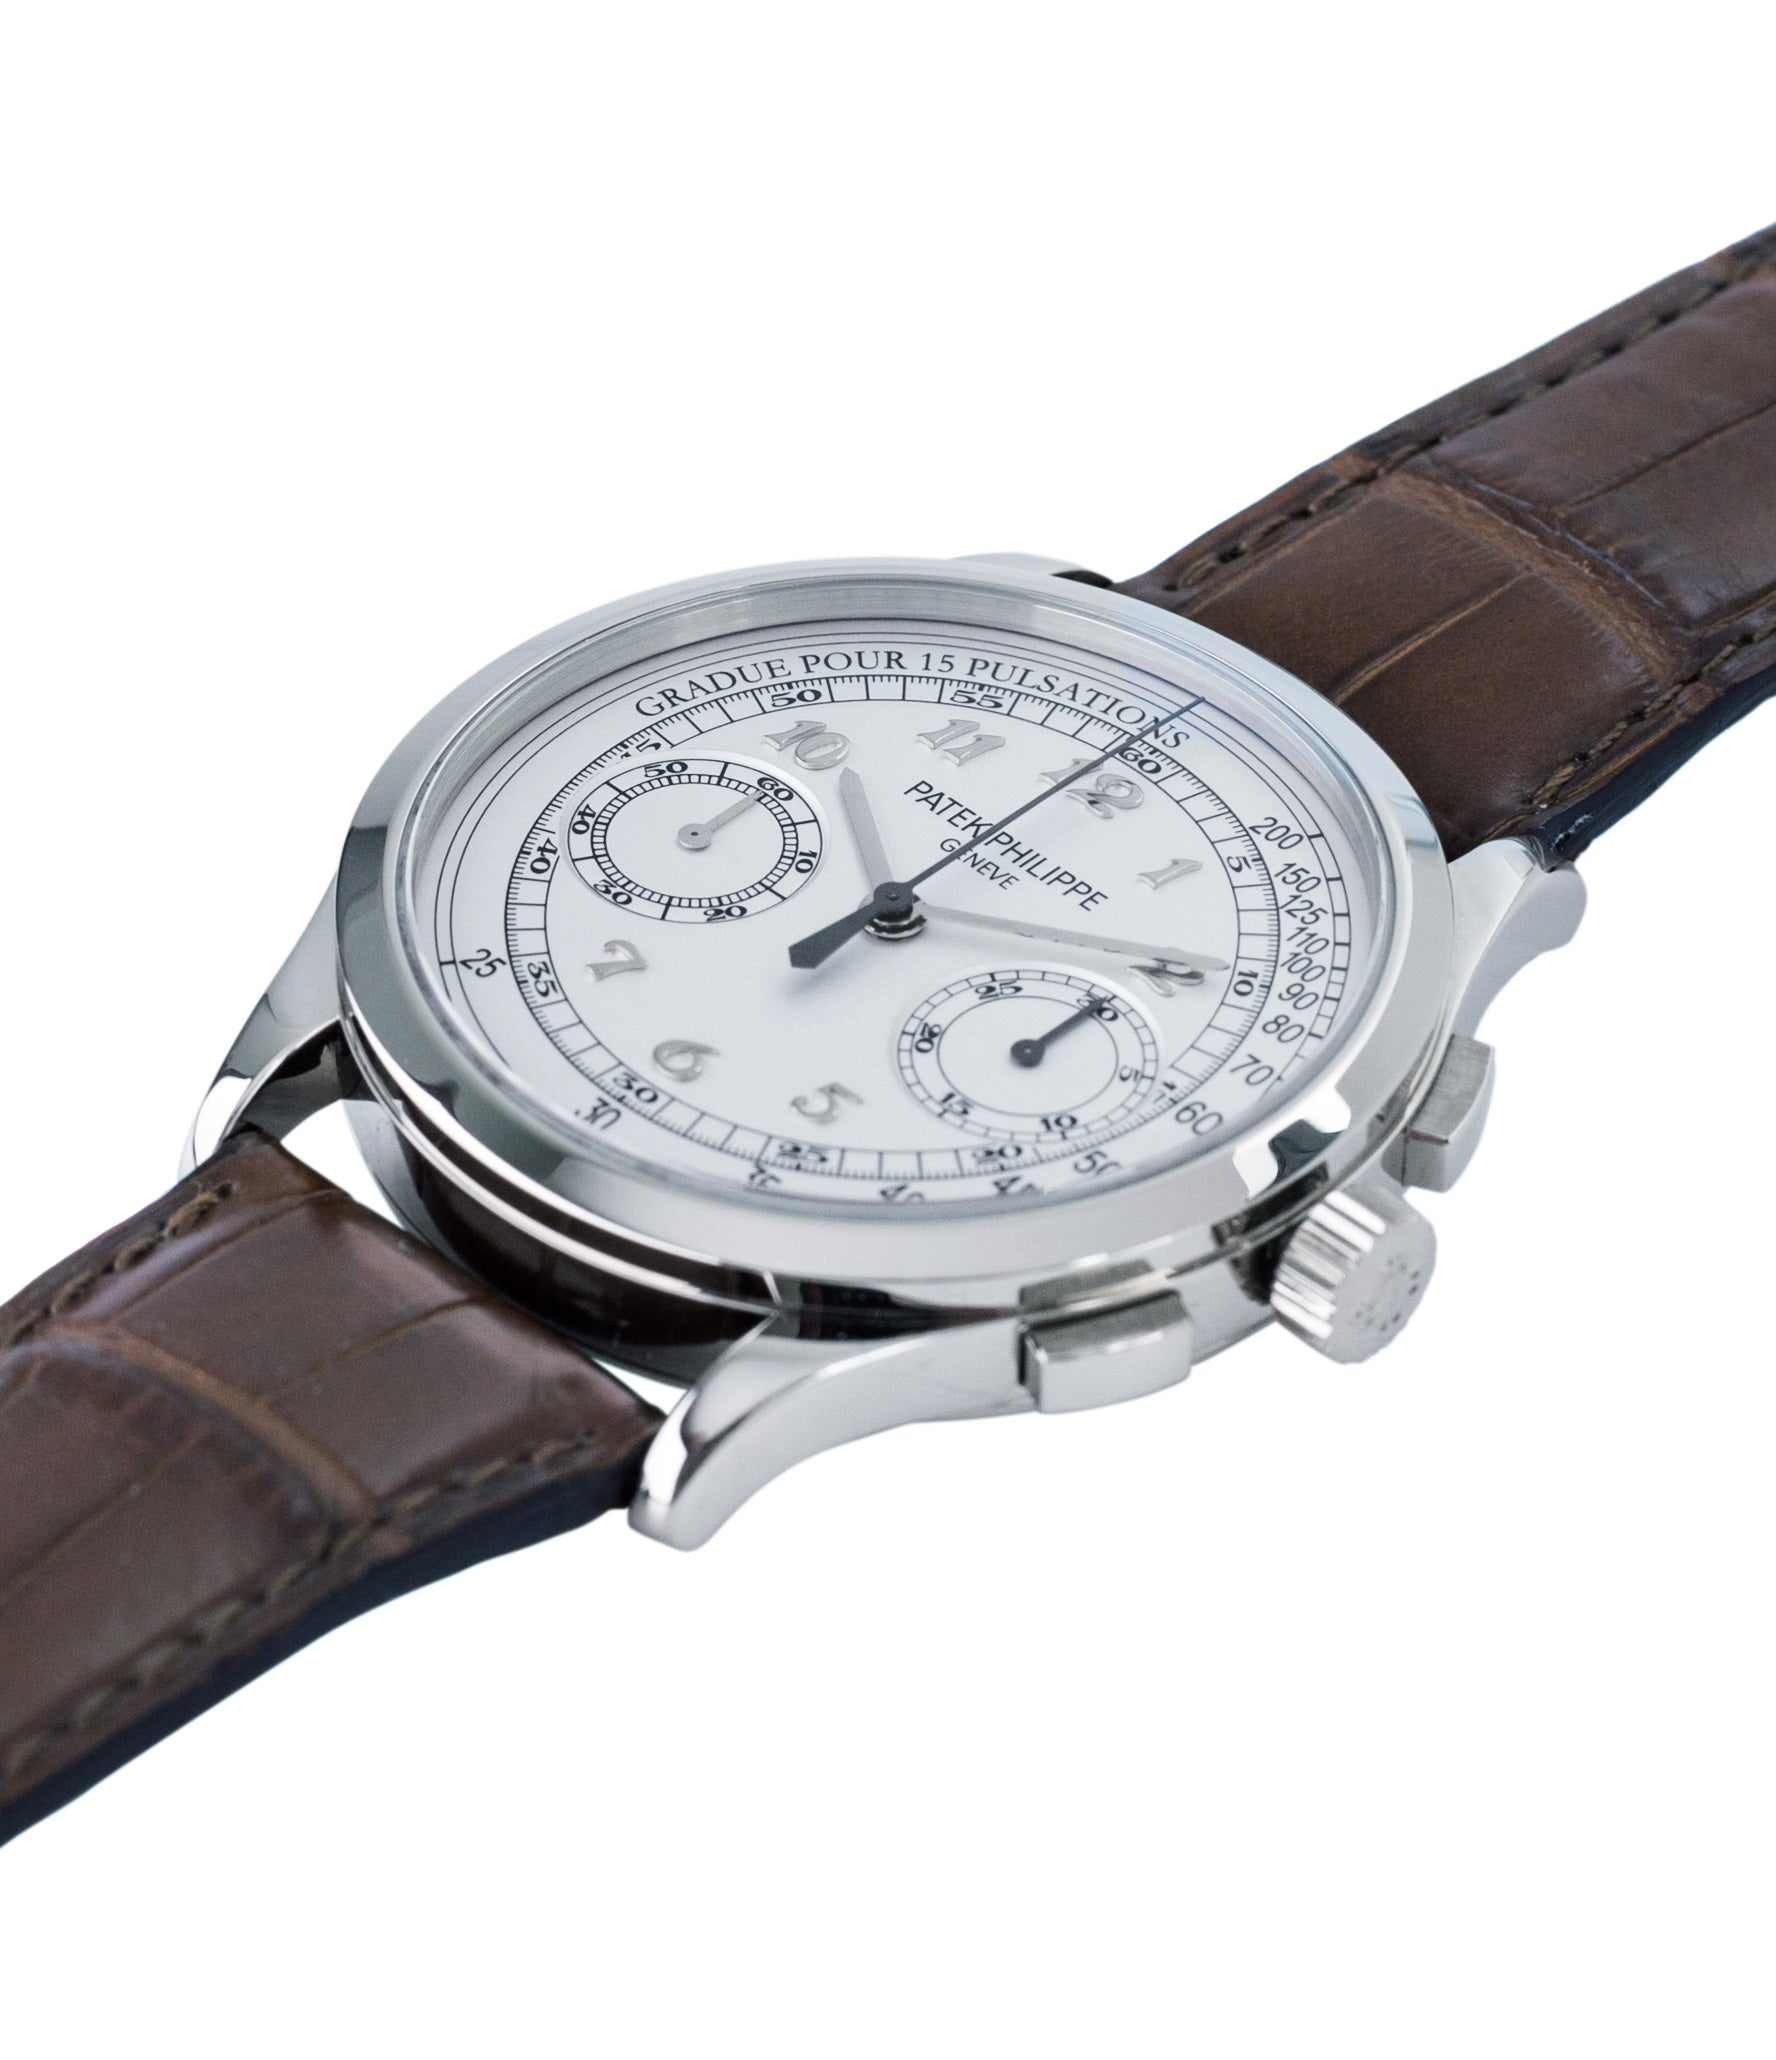 selling Patek Philippe 5170G-001 grey gold dress Chronograph Pulsation Scale preowned watch at A Collected Man London rare watch specialist in United Kingdom